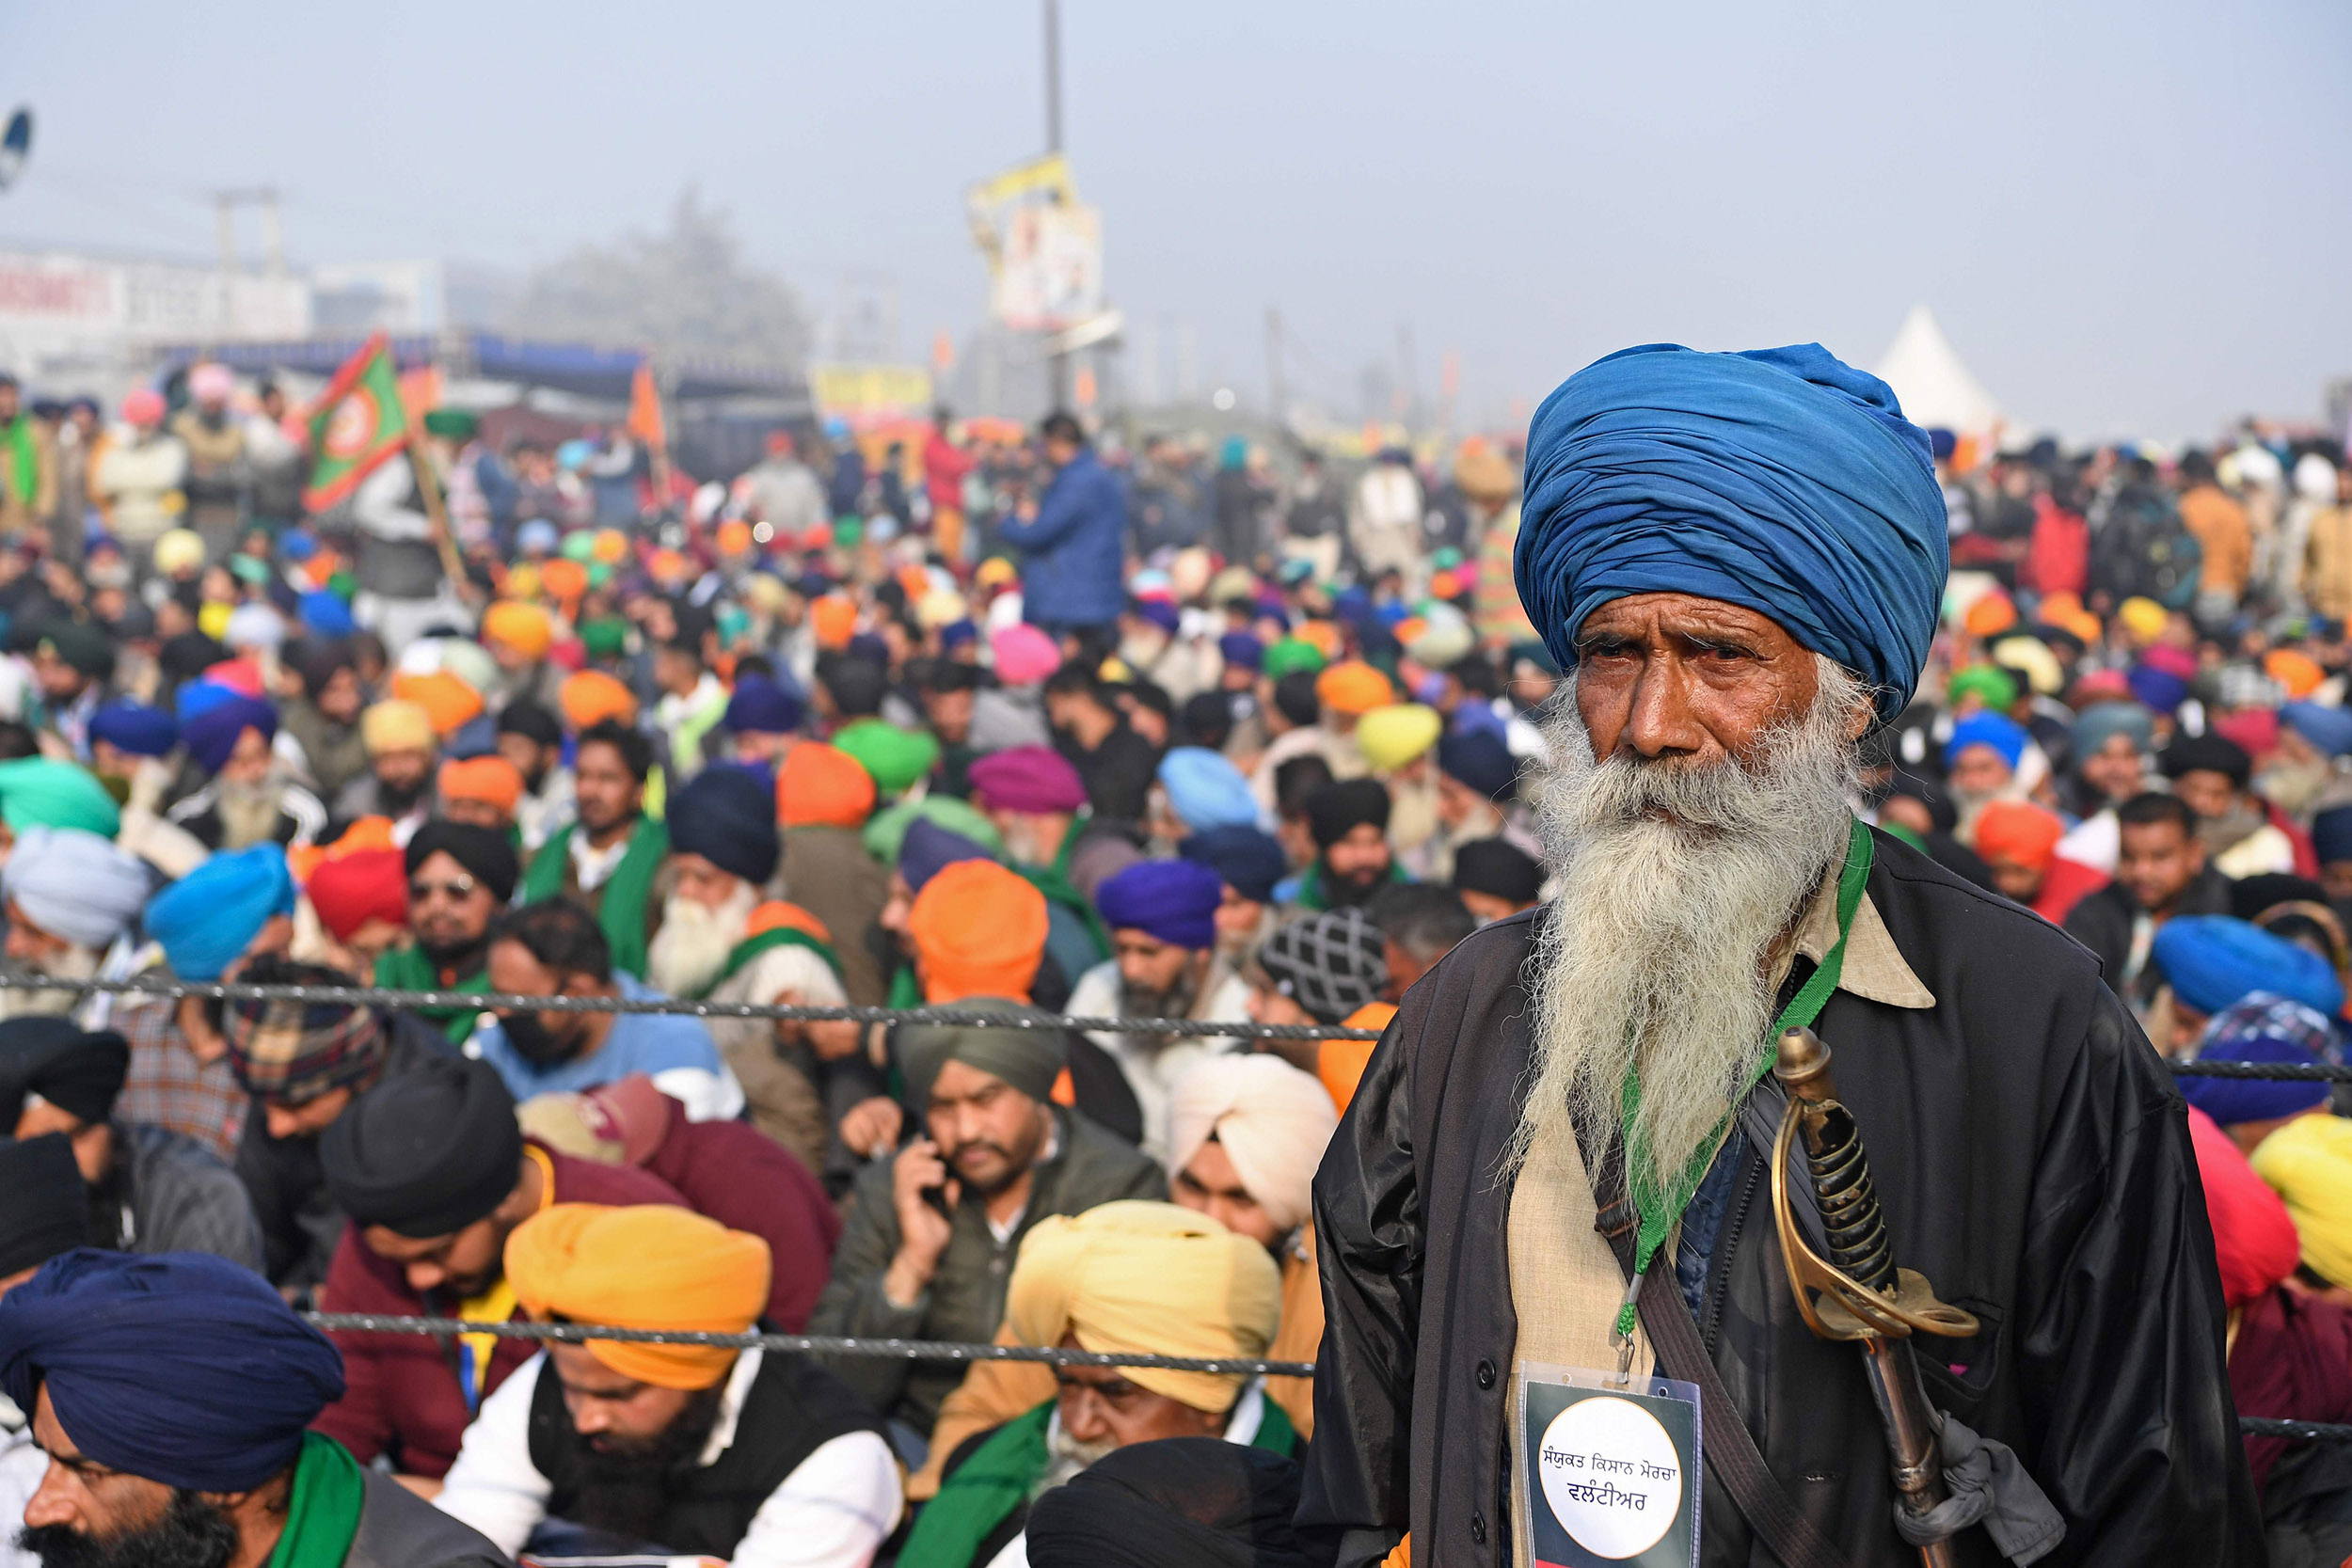 Farmers protest across India against laws liberalizing agricultural markets